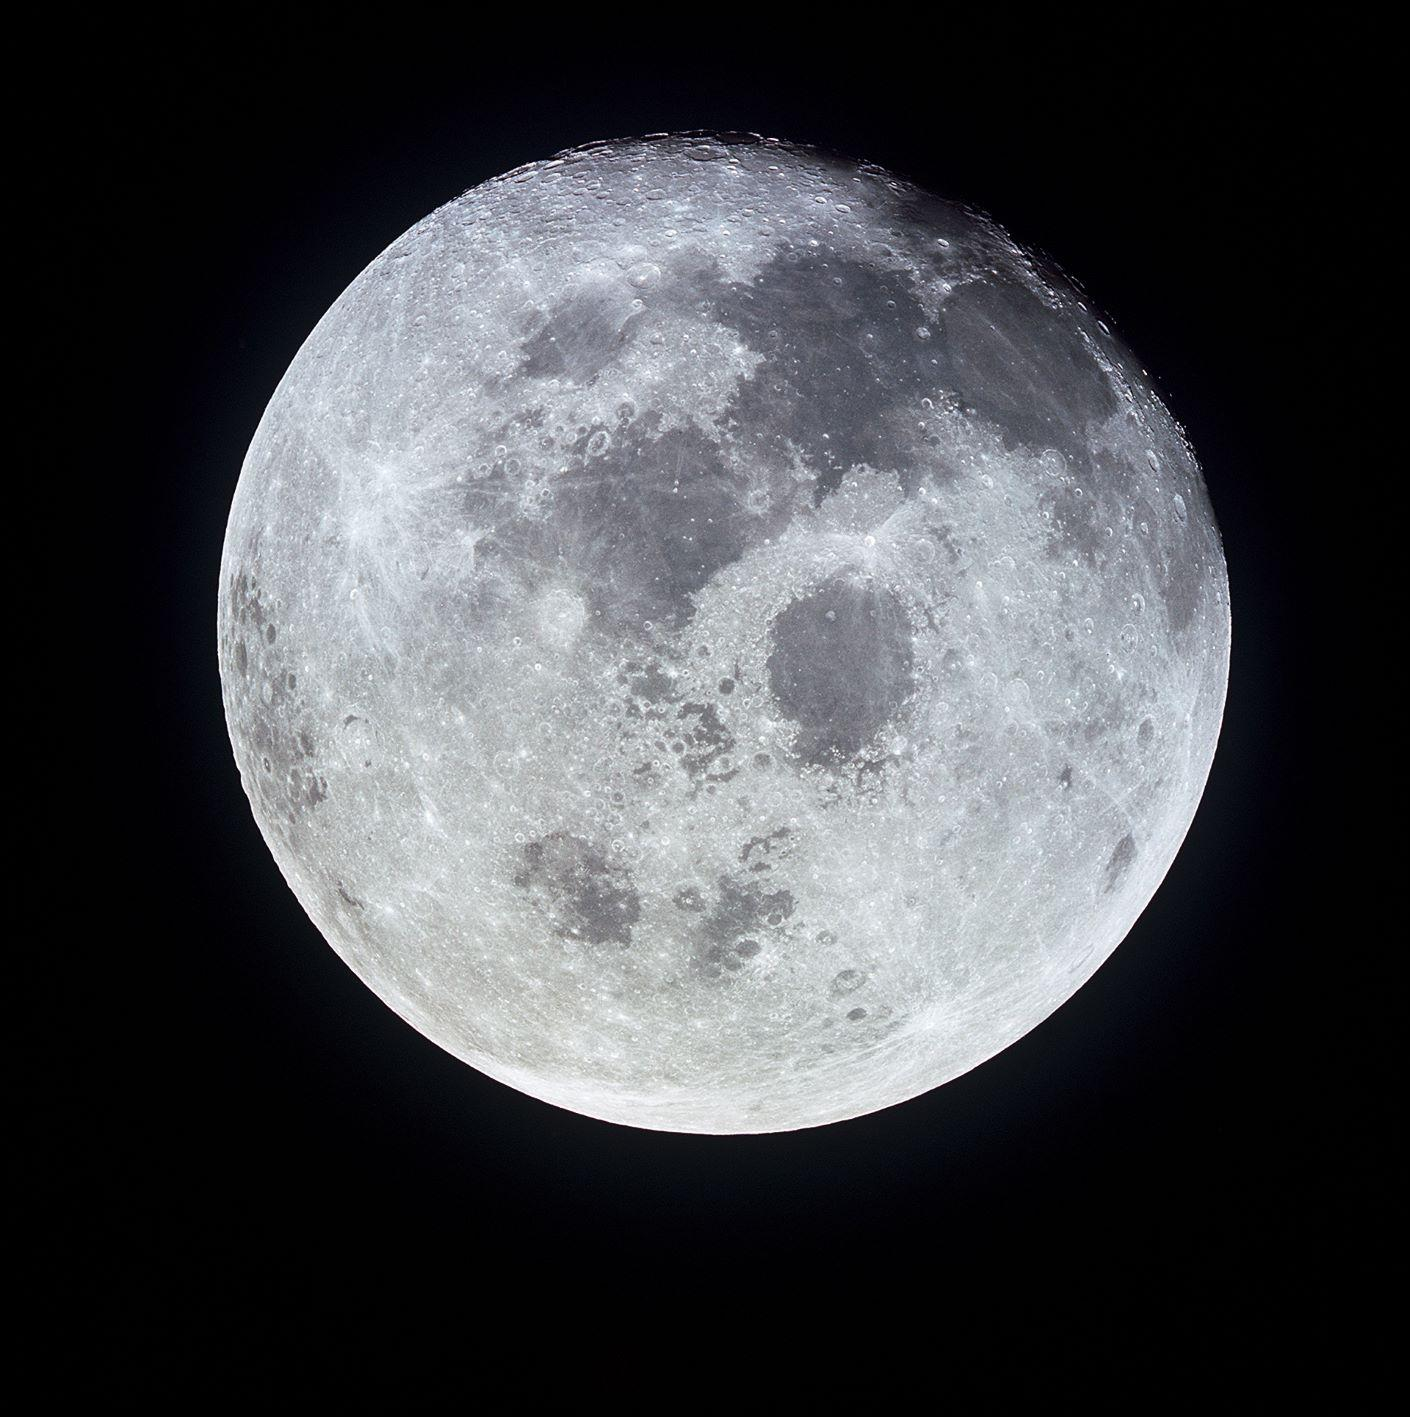 New research provides insights into chemicals trapped in the Moon's dark craters and the conditions necessary for them to collect there. (Image: NASA)